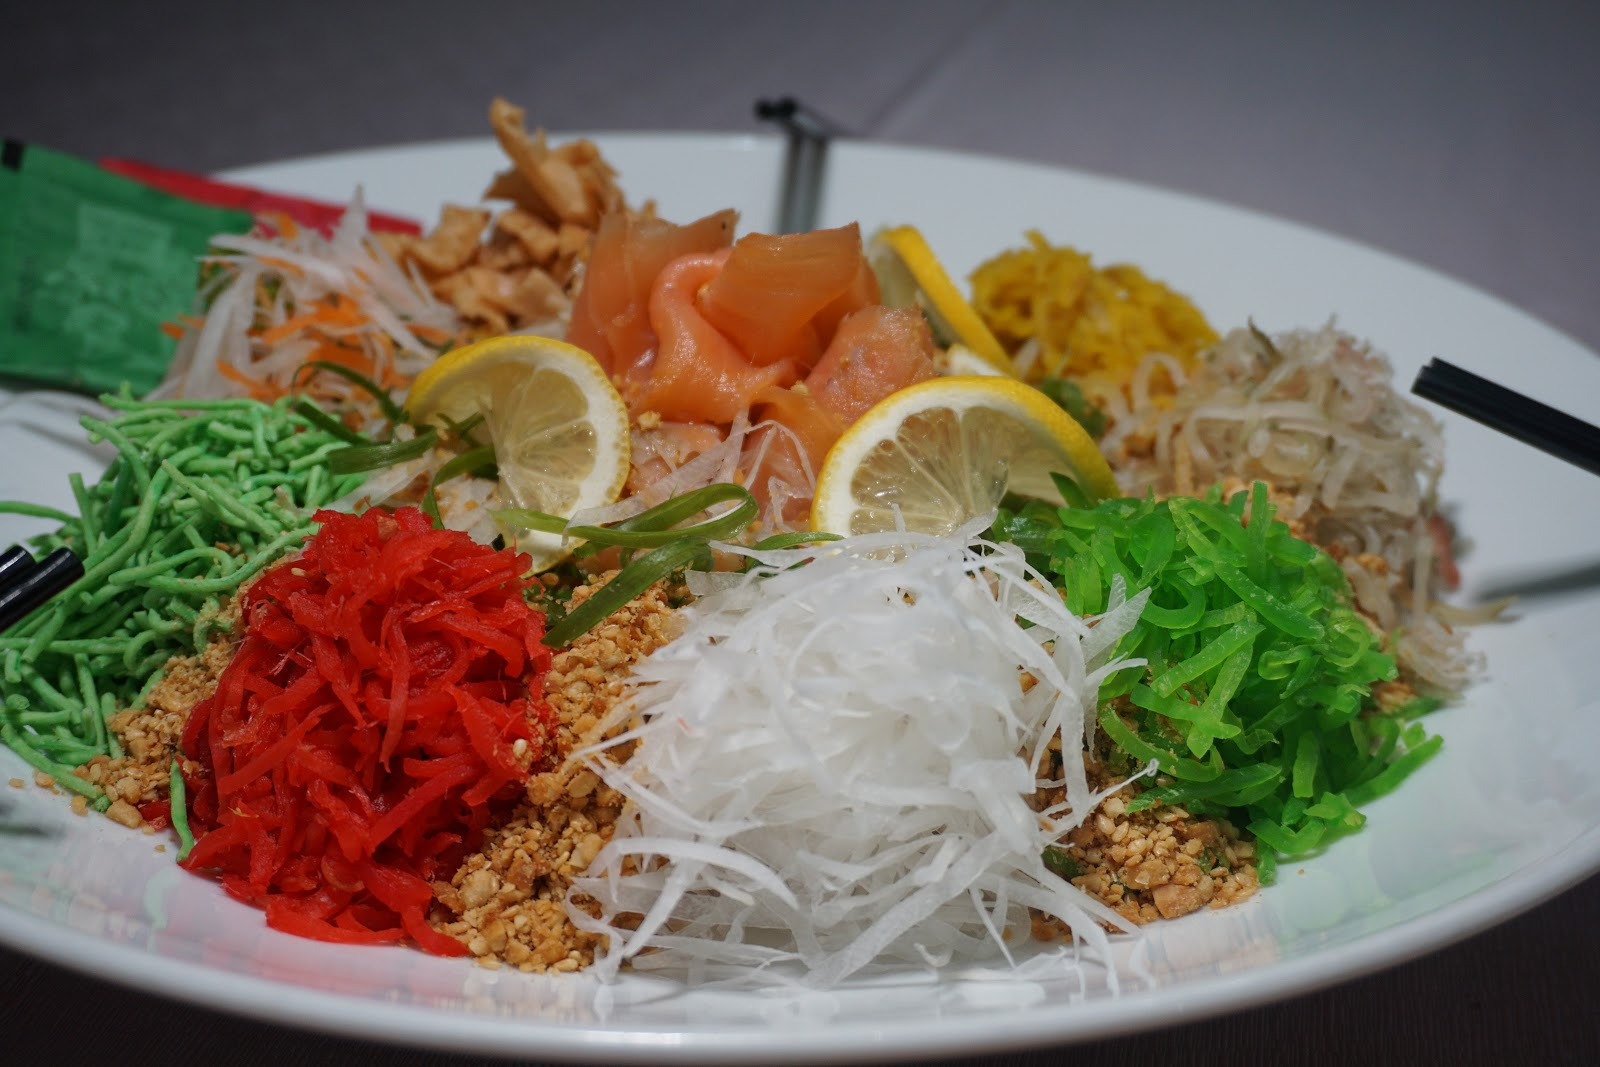 Yee Sang Promo, Steamboat Buffet Dinner